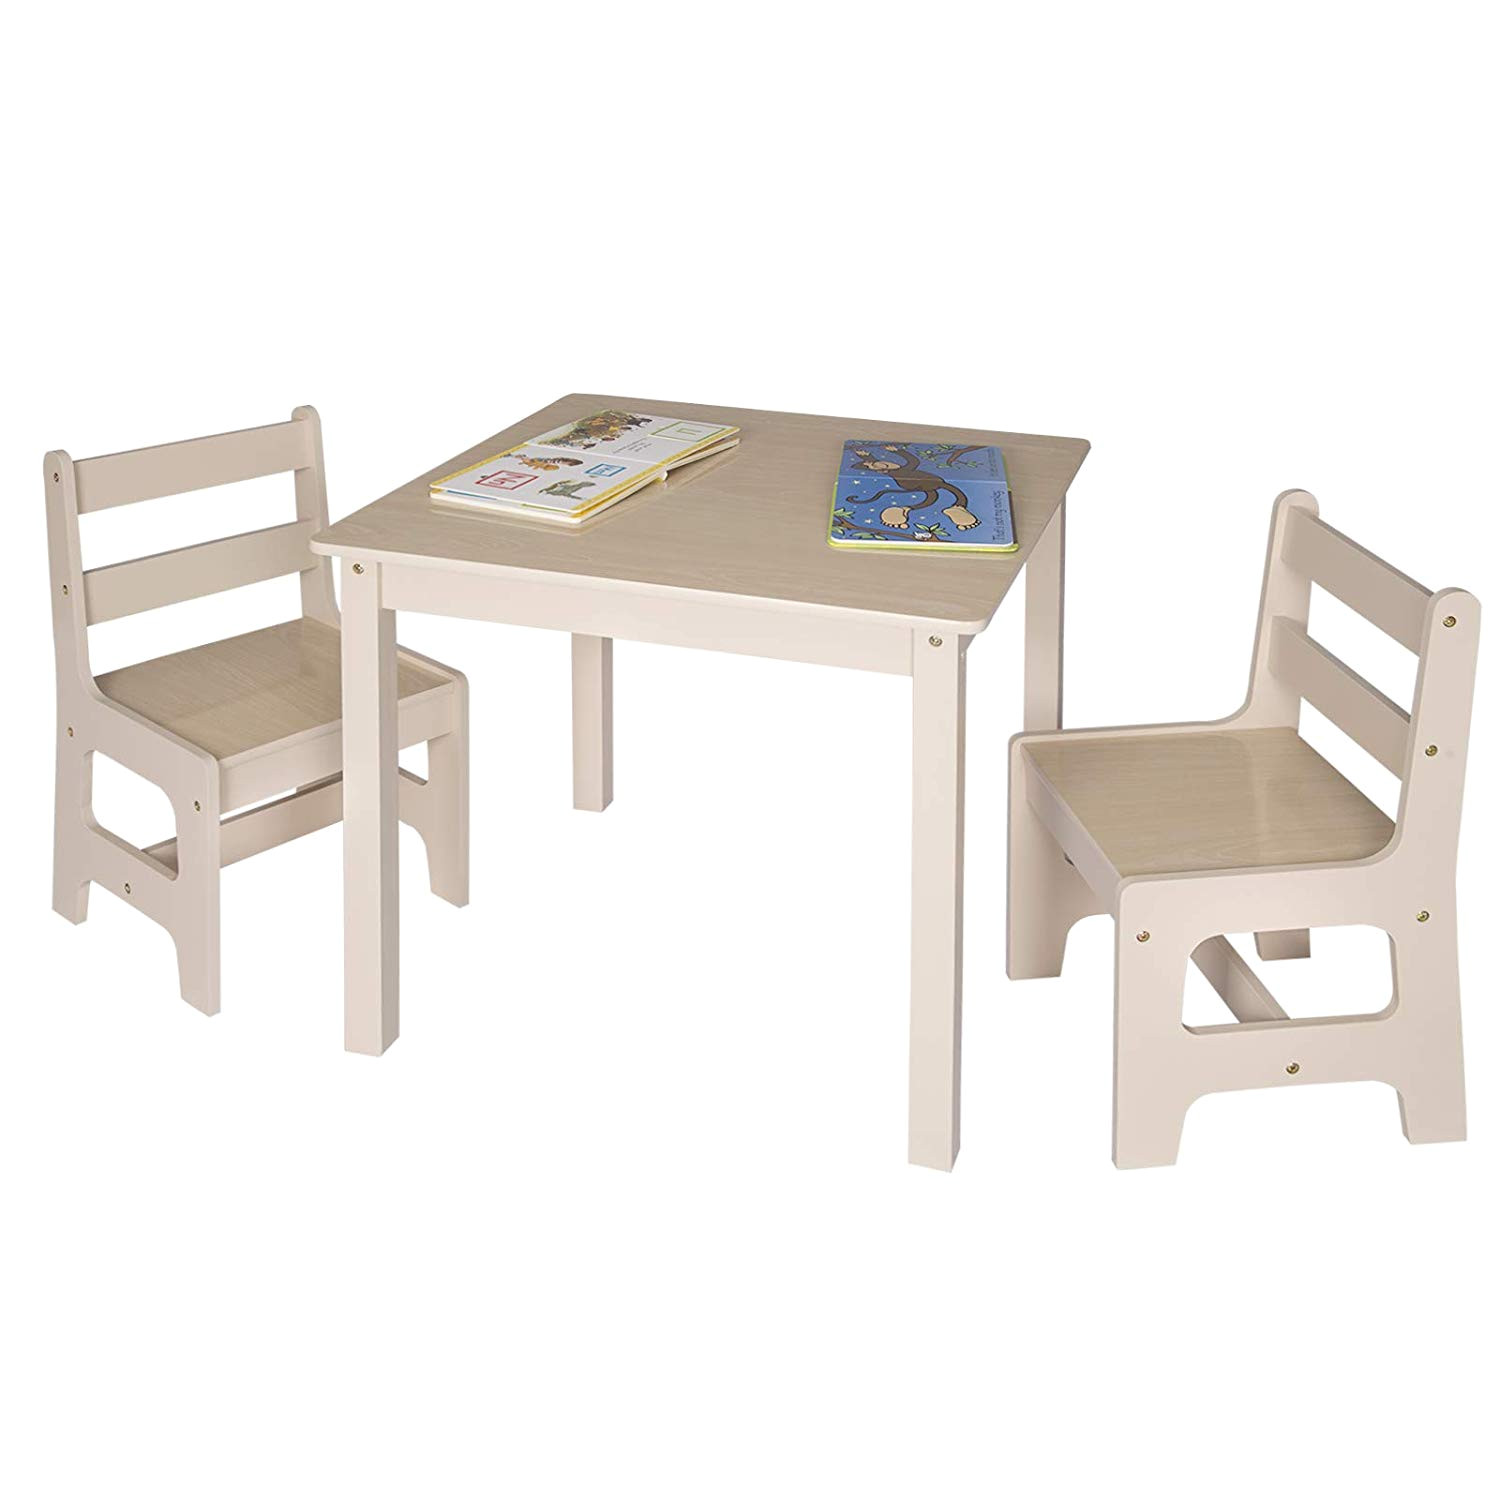 Toys R Us Canada toddler Table and Chairs Woltu Wooden Kids Children S Desk Table with 2 Chairs Stools Set